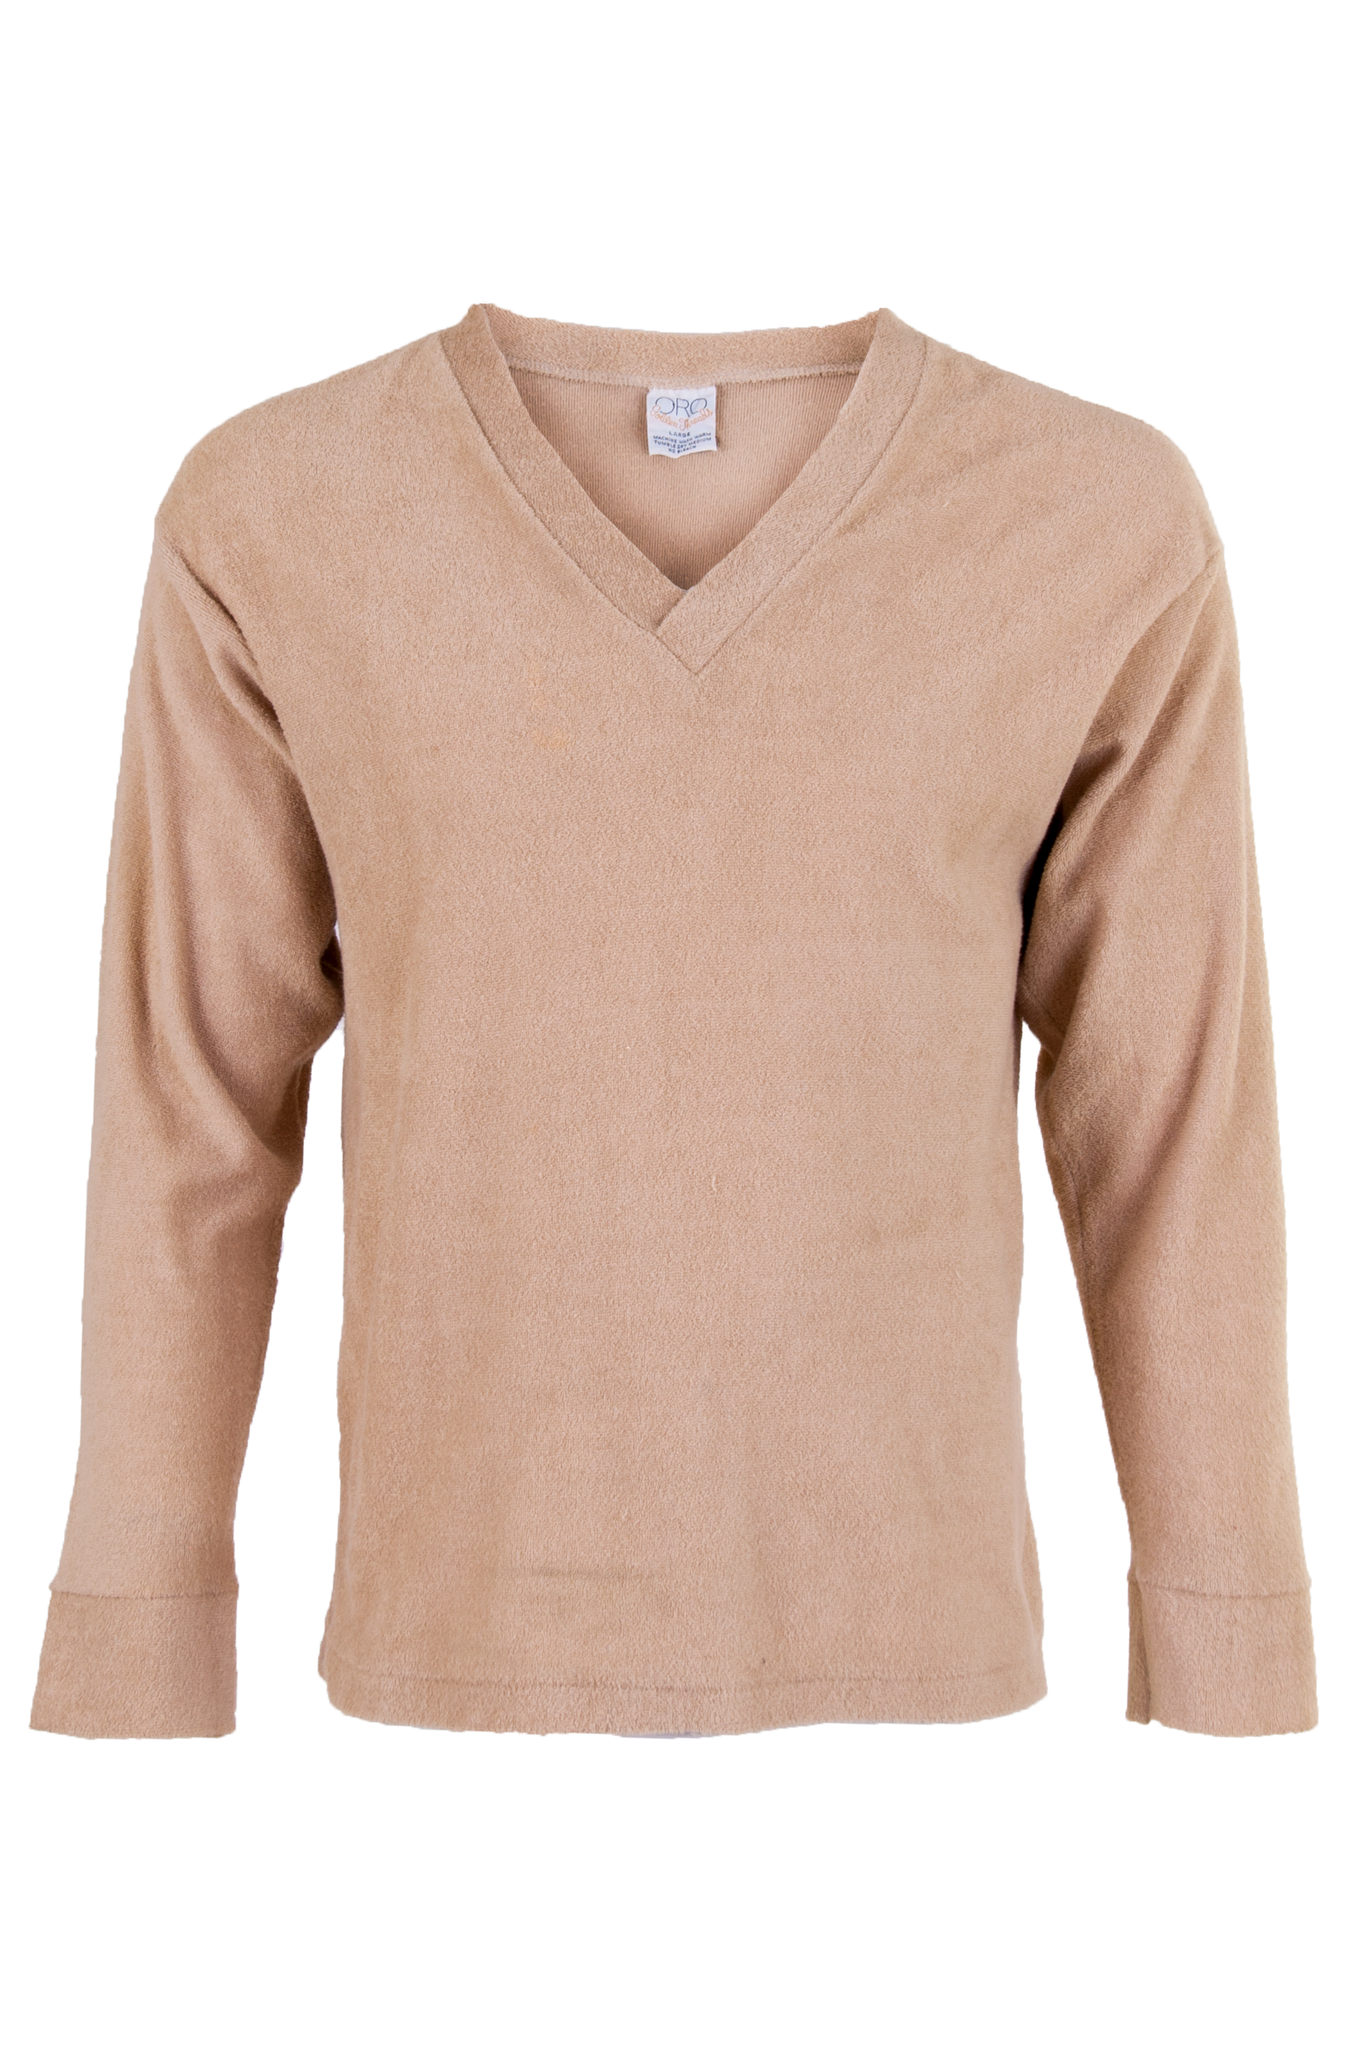 terry cloth camel sweater